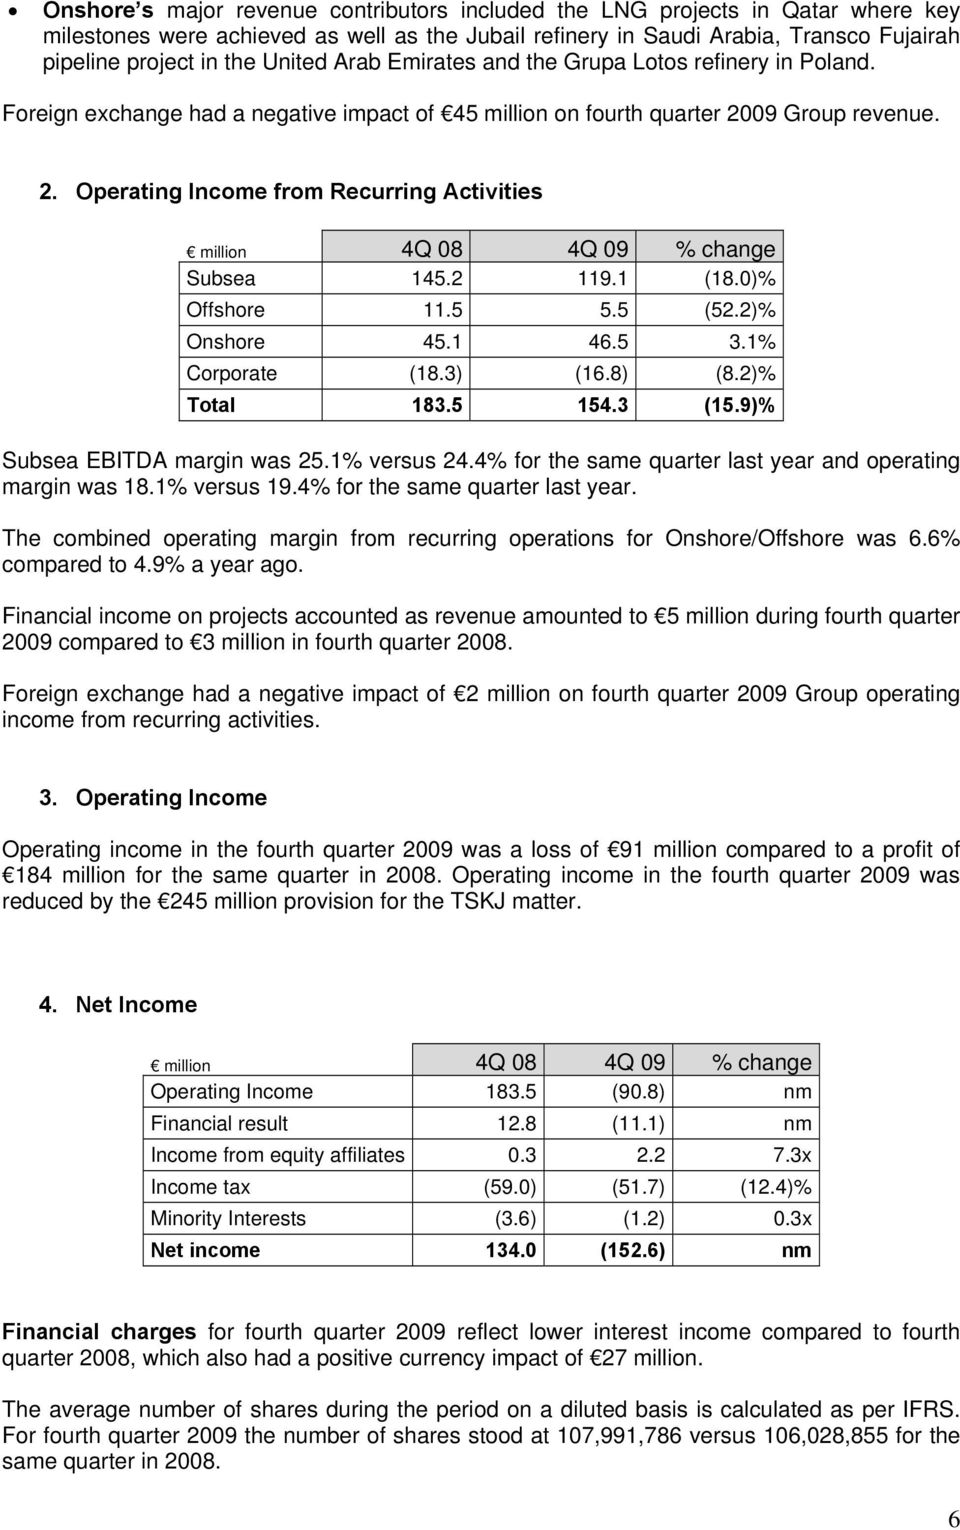 09 Group revenue. 2. Operating Income from Recurring Activities million 4Q 08 4Q 09 % change Subsea 145.2 119.1 (18.0)% Offshore 11.5 5.5 (52.2)% Onshore 45.1 46.5 3.1% Corporate (18.3) (16.8) (8.